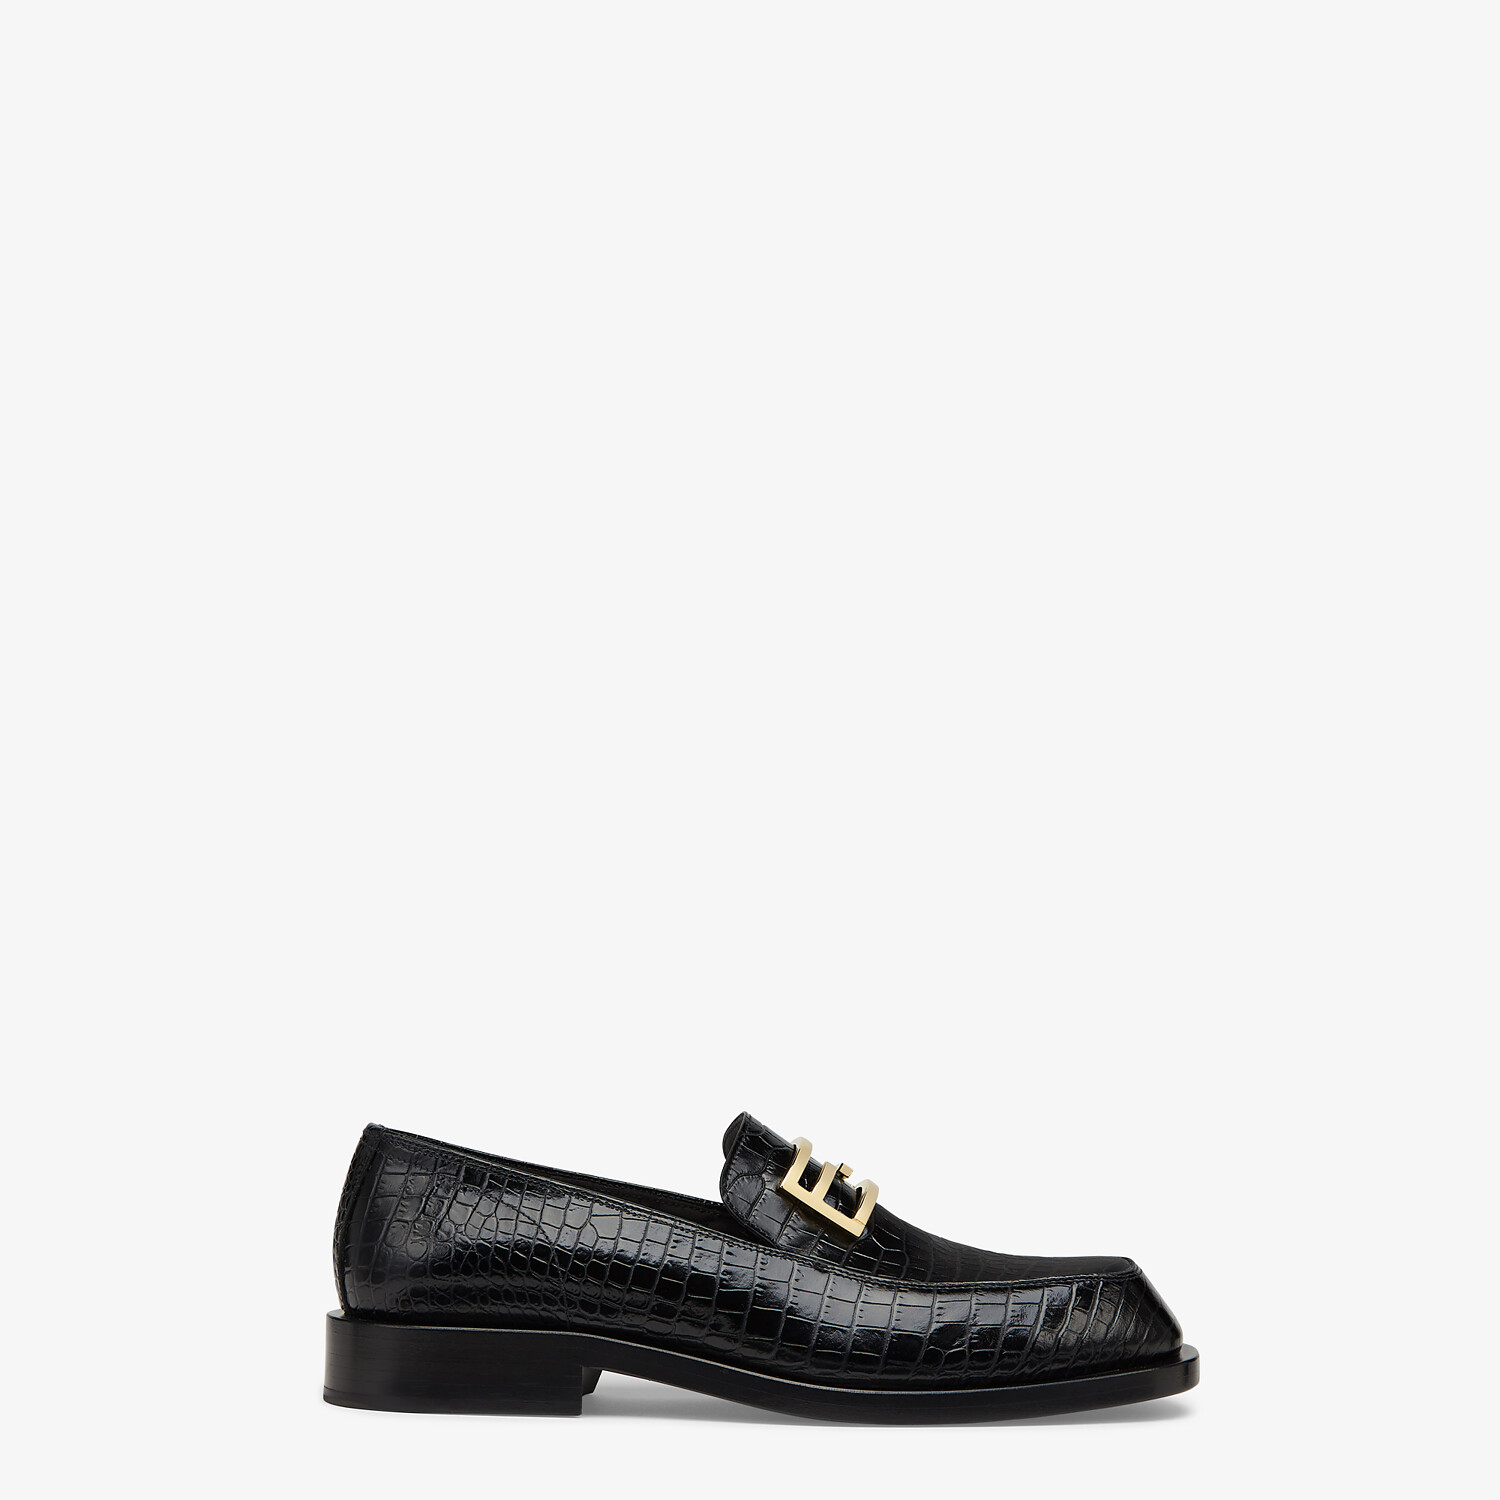 FENDI LOAFERS - Black leather loafers - view 1 detail